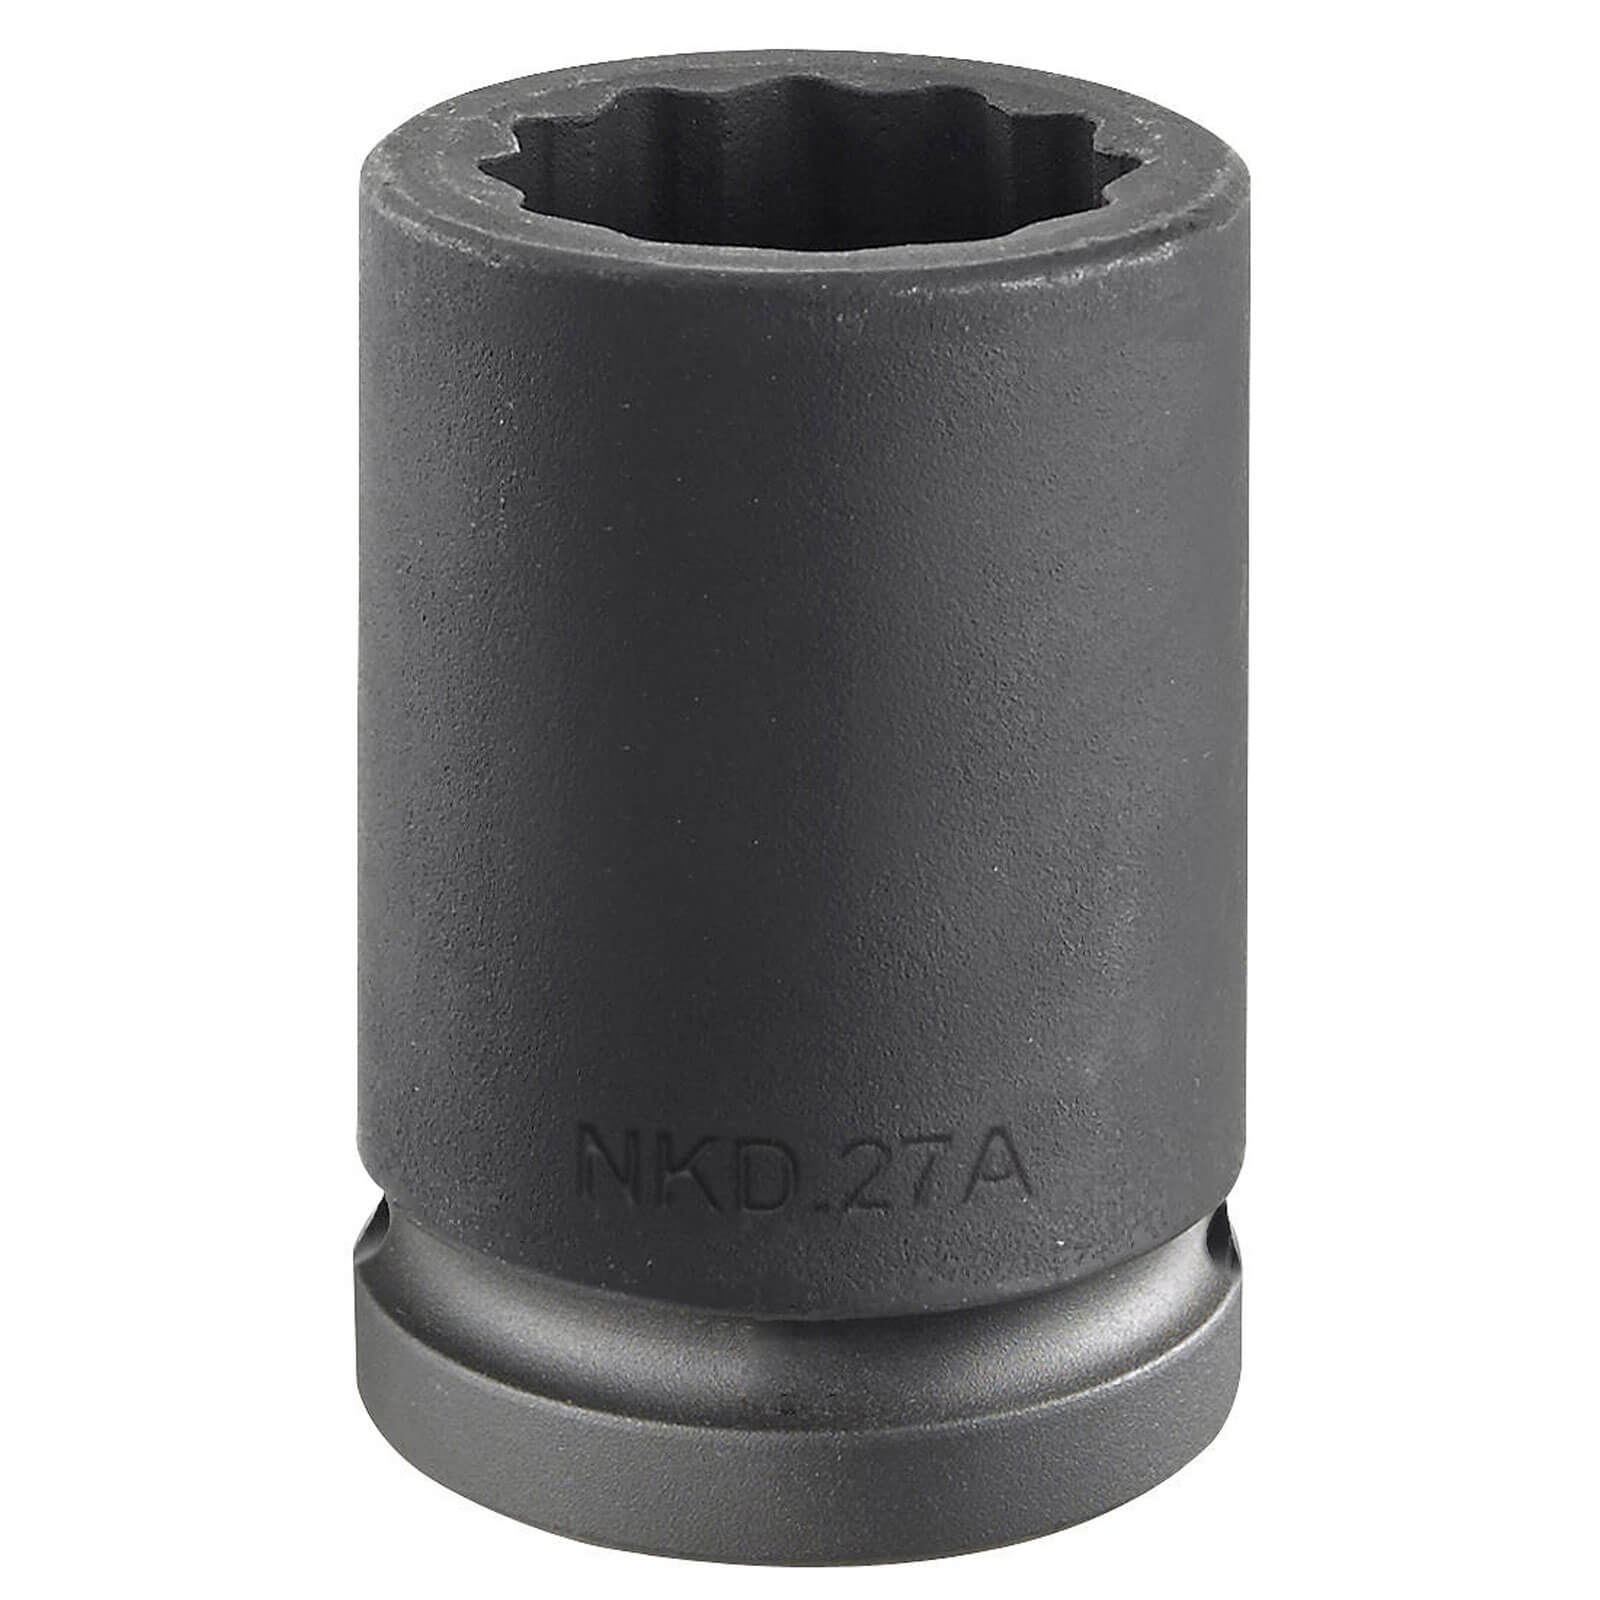 Click to view product details and reviews for Facom 3 4 Drive Bi Hexagon Impact Socket Metric 3 4 38mm.